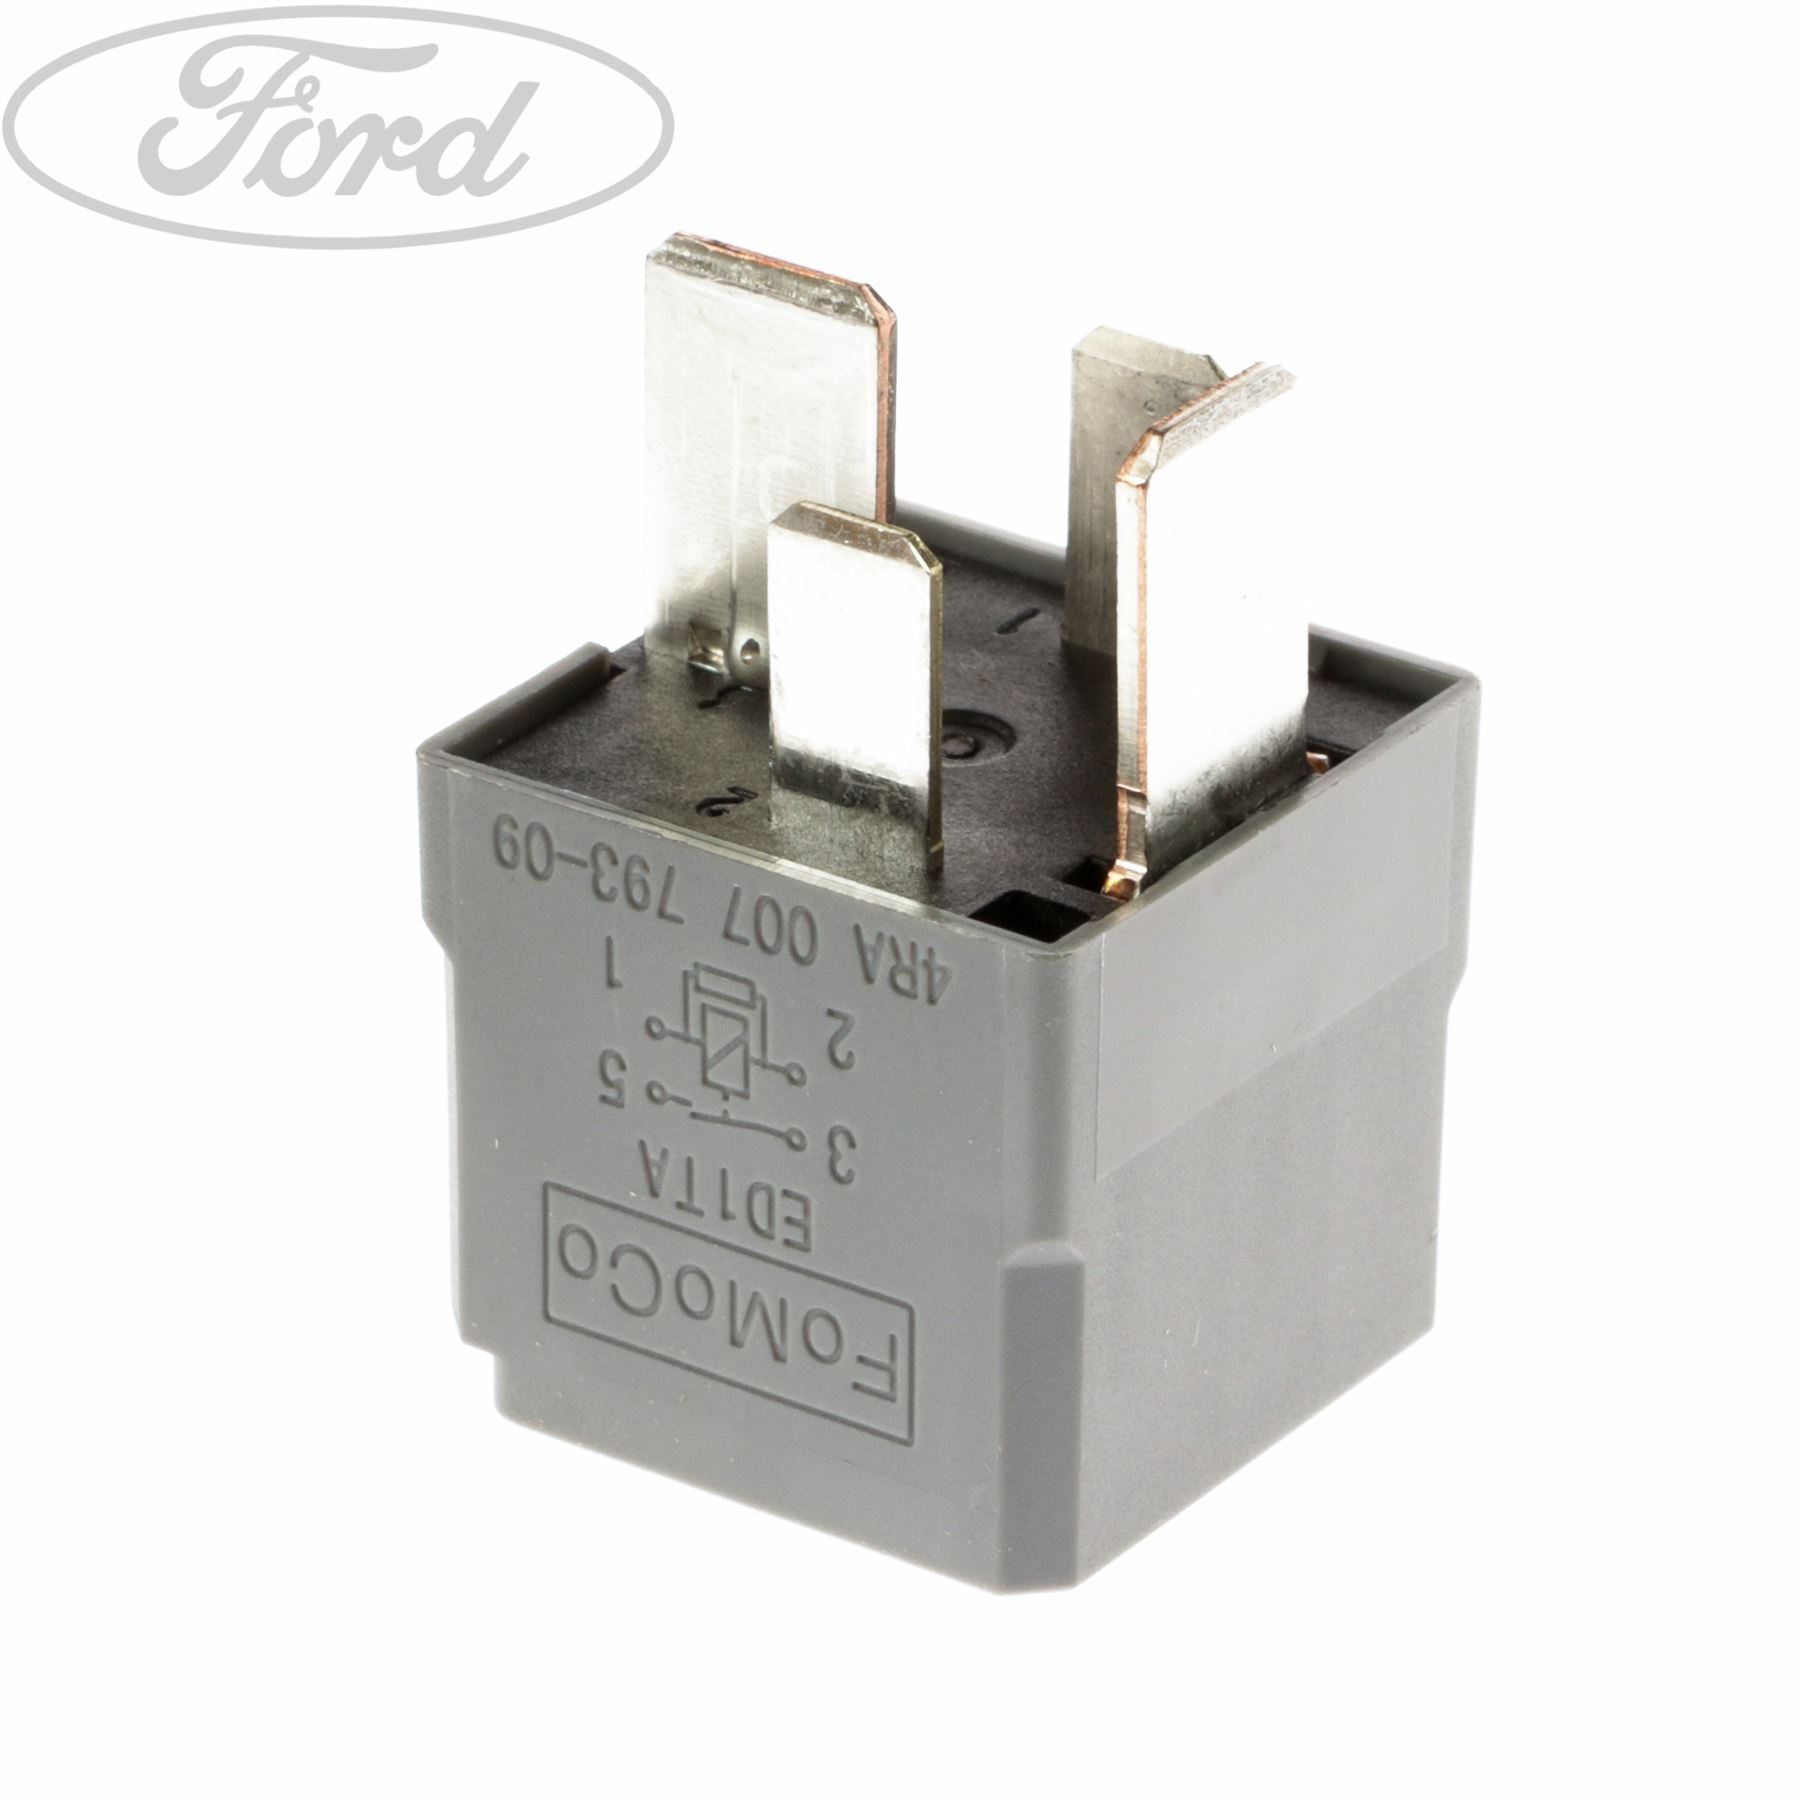 Genuine Ford Mondeo S Max Transit Mk7 Relay 70 Amp Hella Mini 4 2009 Focus Fuse Panel And Ampere Rating Table Terminal 1433498